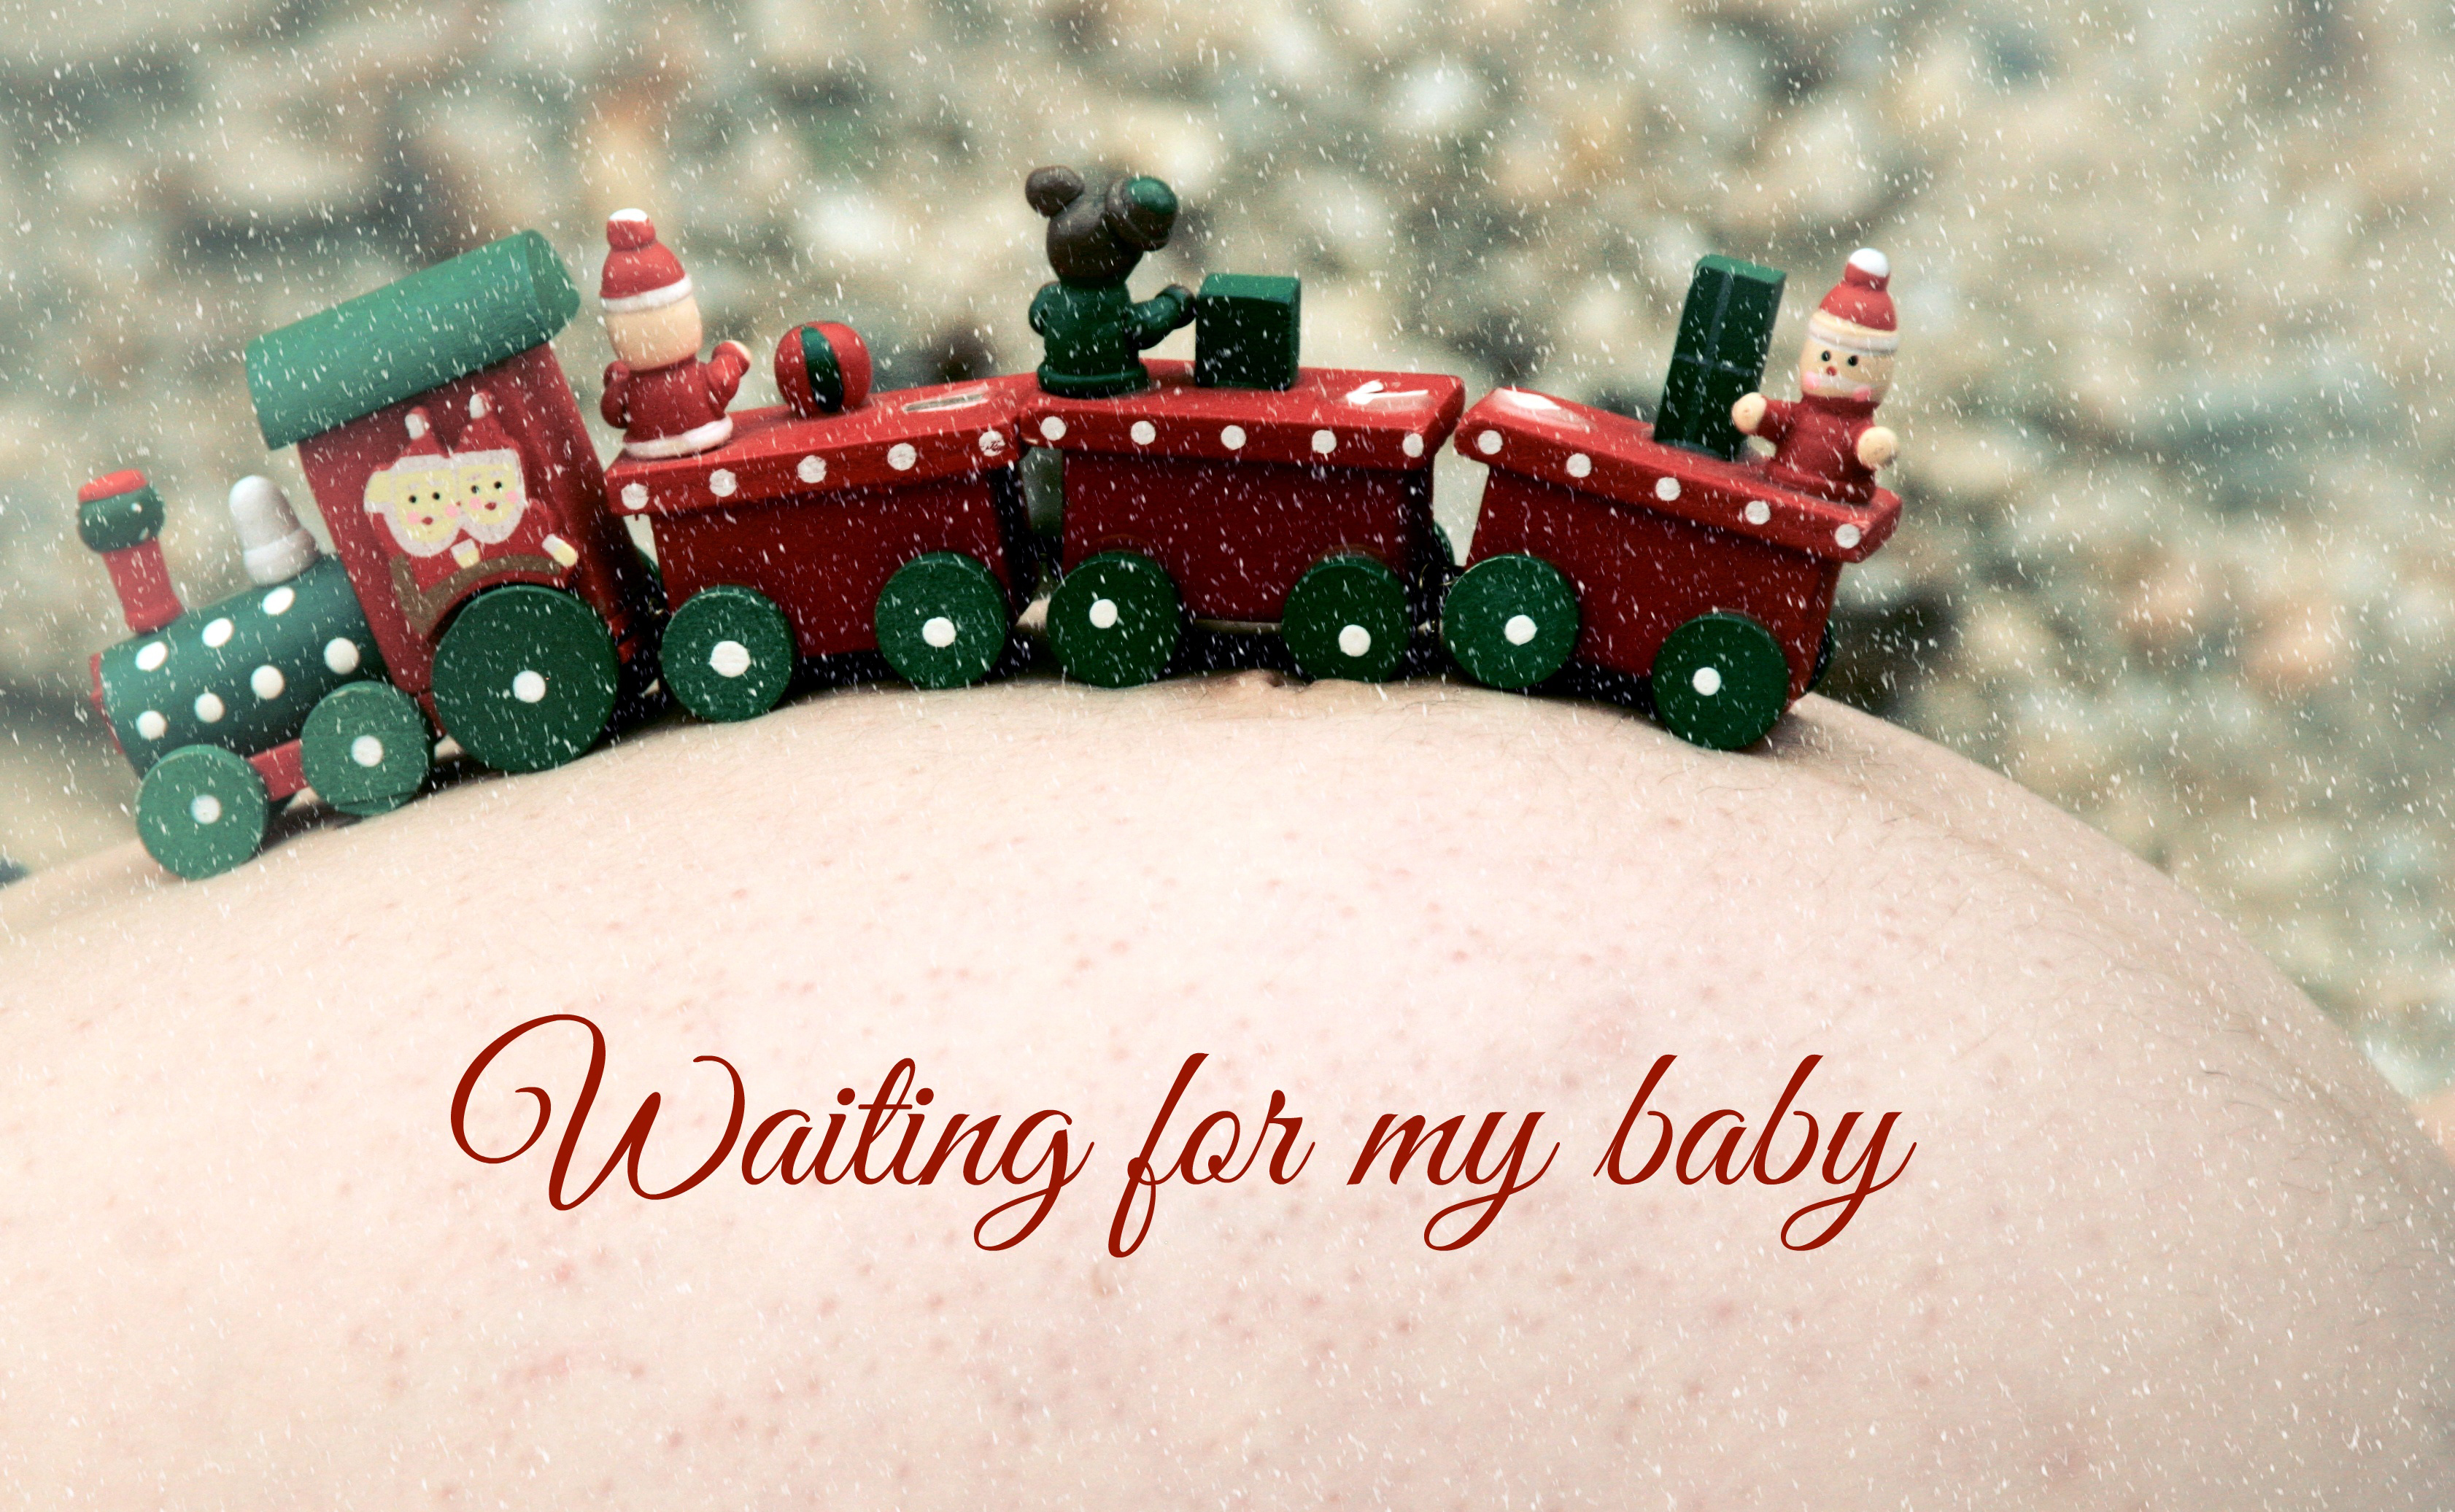 Toy train, pregnant, red, toy